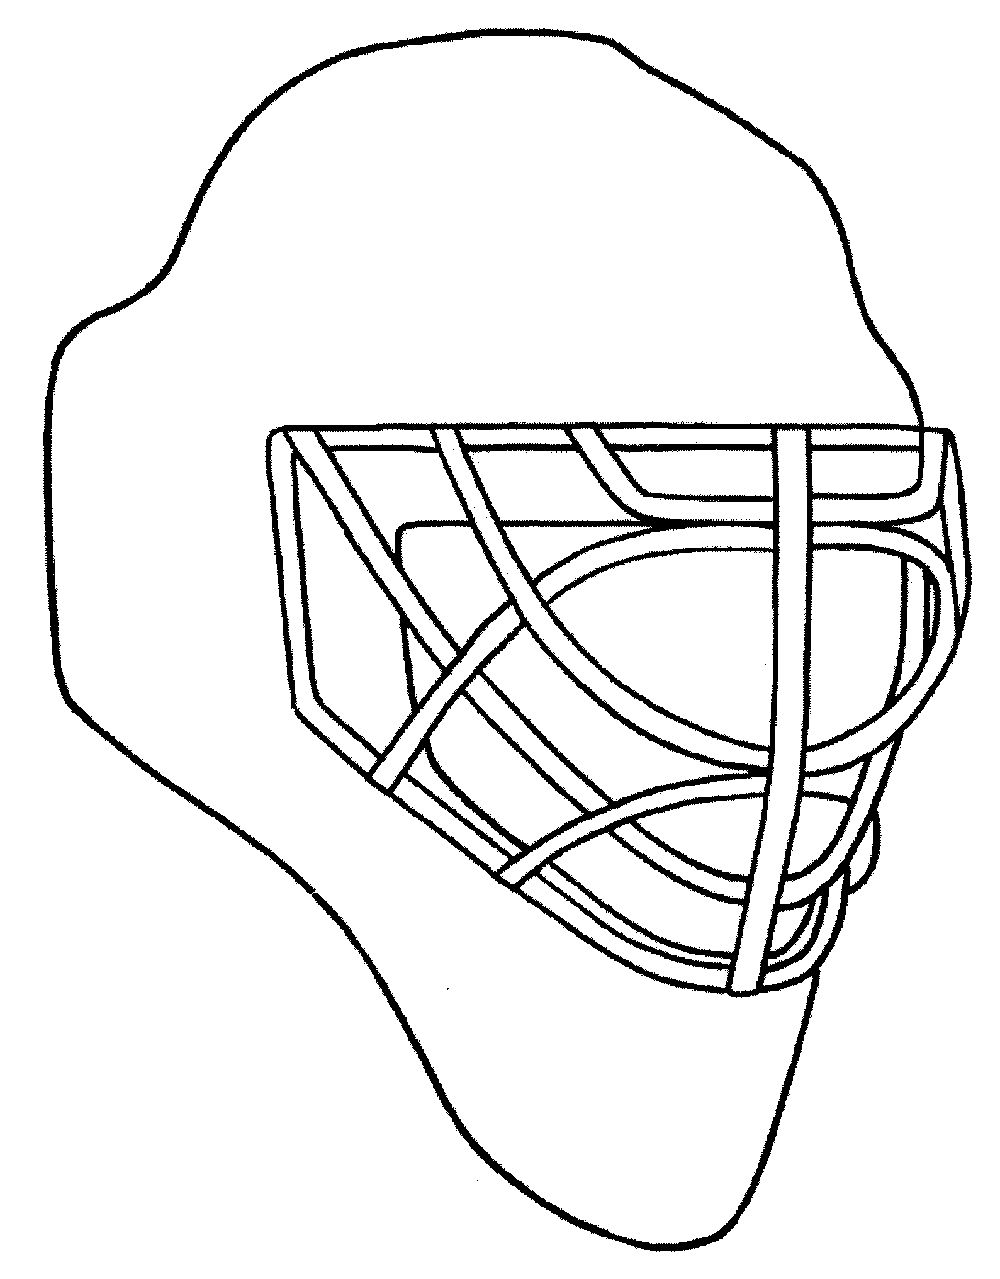 bauer goalie mask template - design your own goalie mask chicago blackhawks coloring